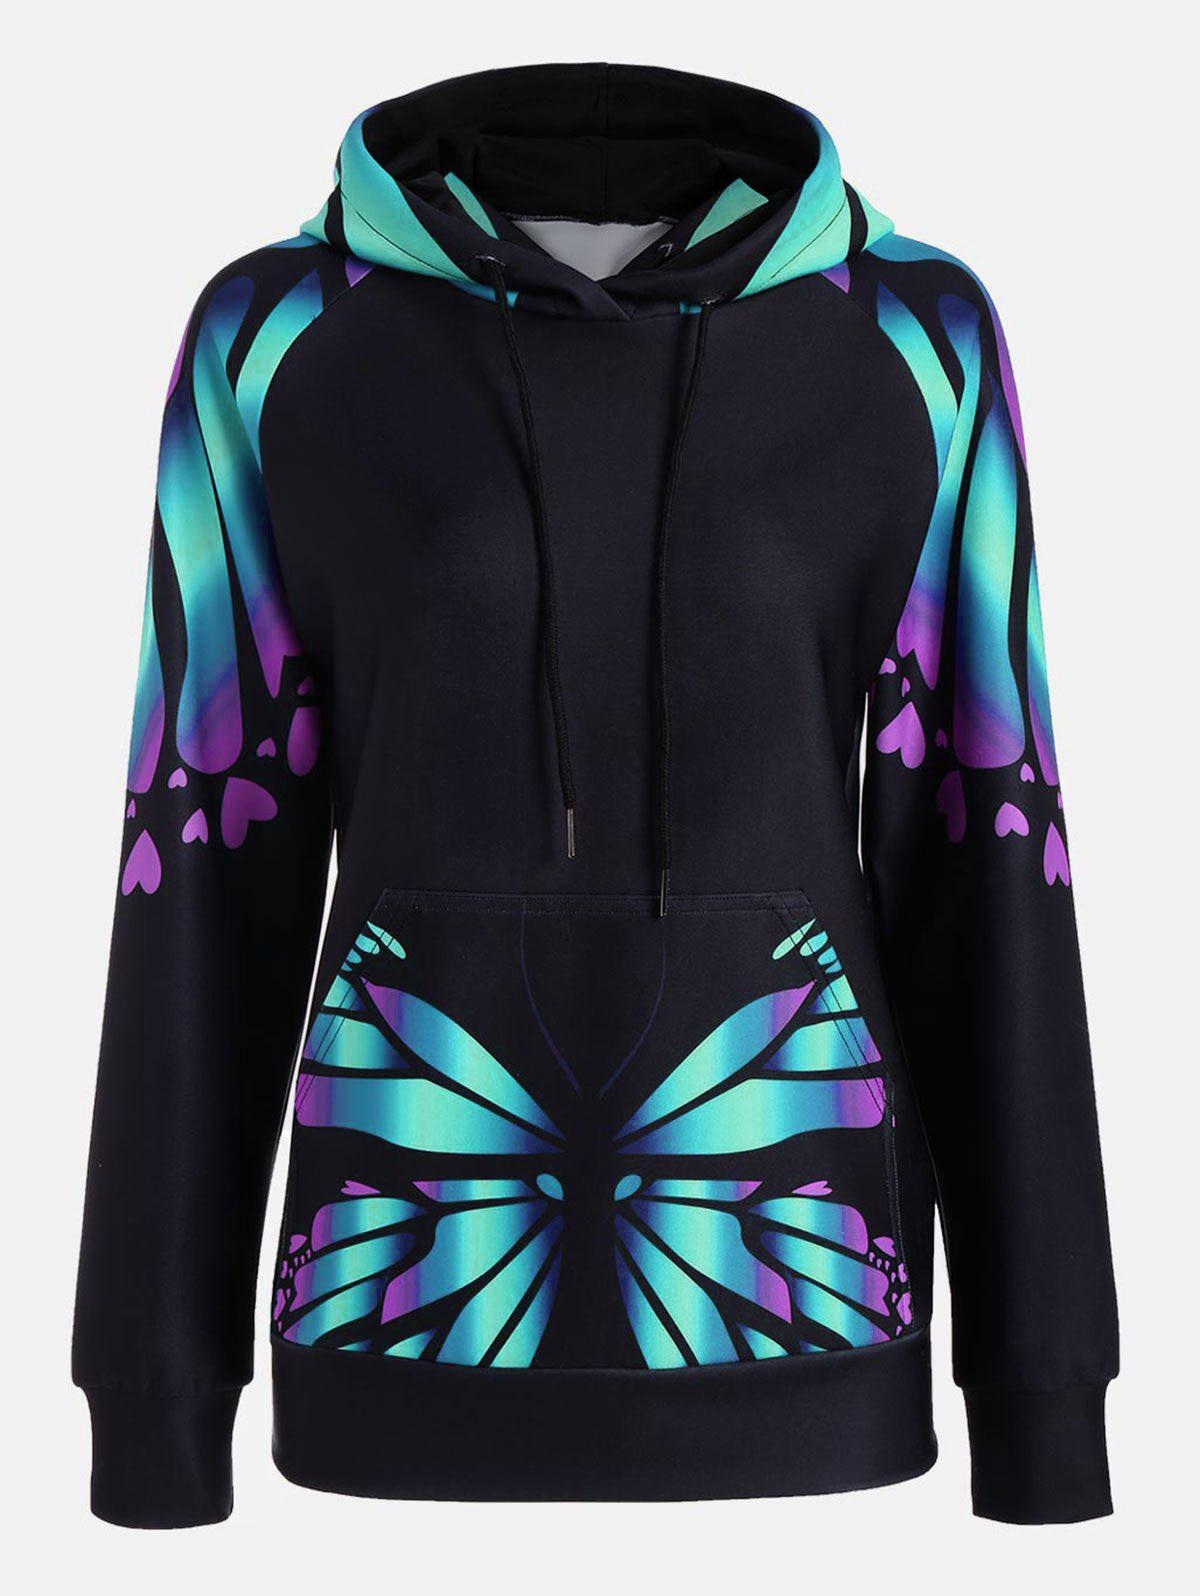 Butterfly Print Raglan Sleeve Kangaroo HoodieWOMEN<br><br>Size: XL; Color: GREEN; Material: Polyester; Shirt Length: Regular; Sleeve Length: Full; Style: Fashion; Pattern Style: Insect,Print; Elasticity: Elastic; Season: Fall,Spring; Weight: 0.4100kg; Package Contents: 1 x Hoodie;